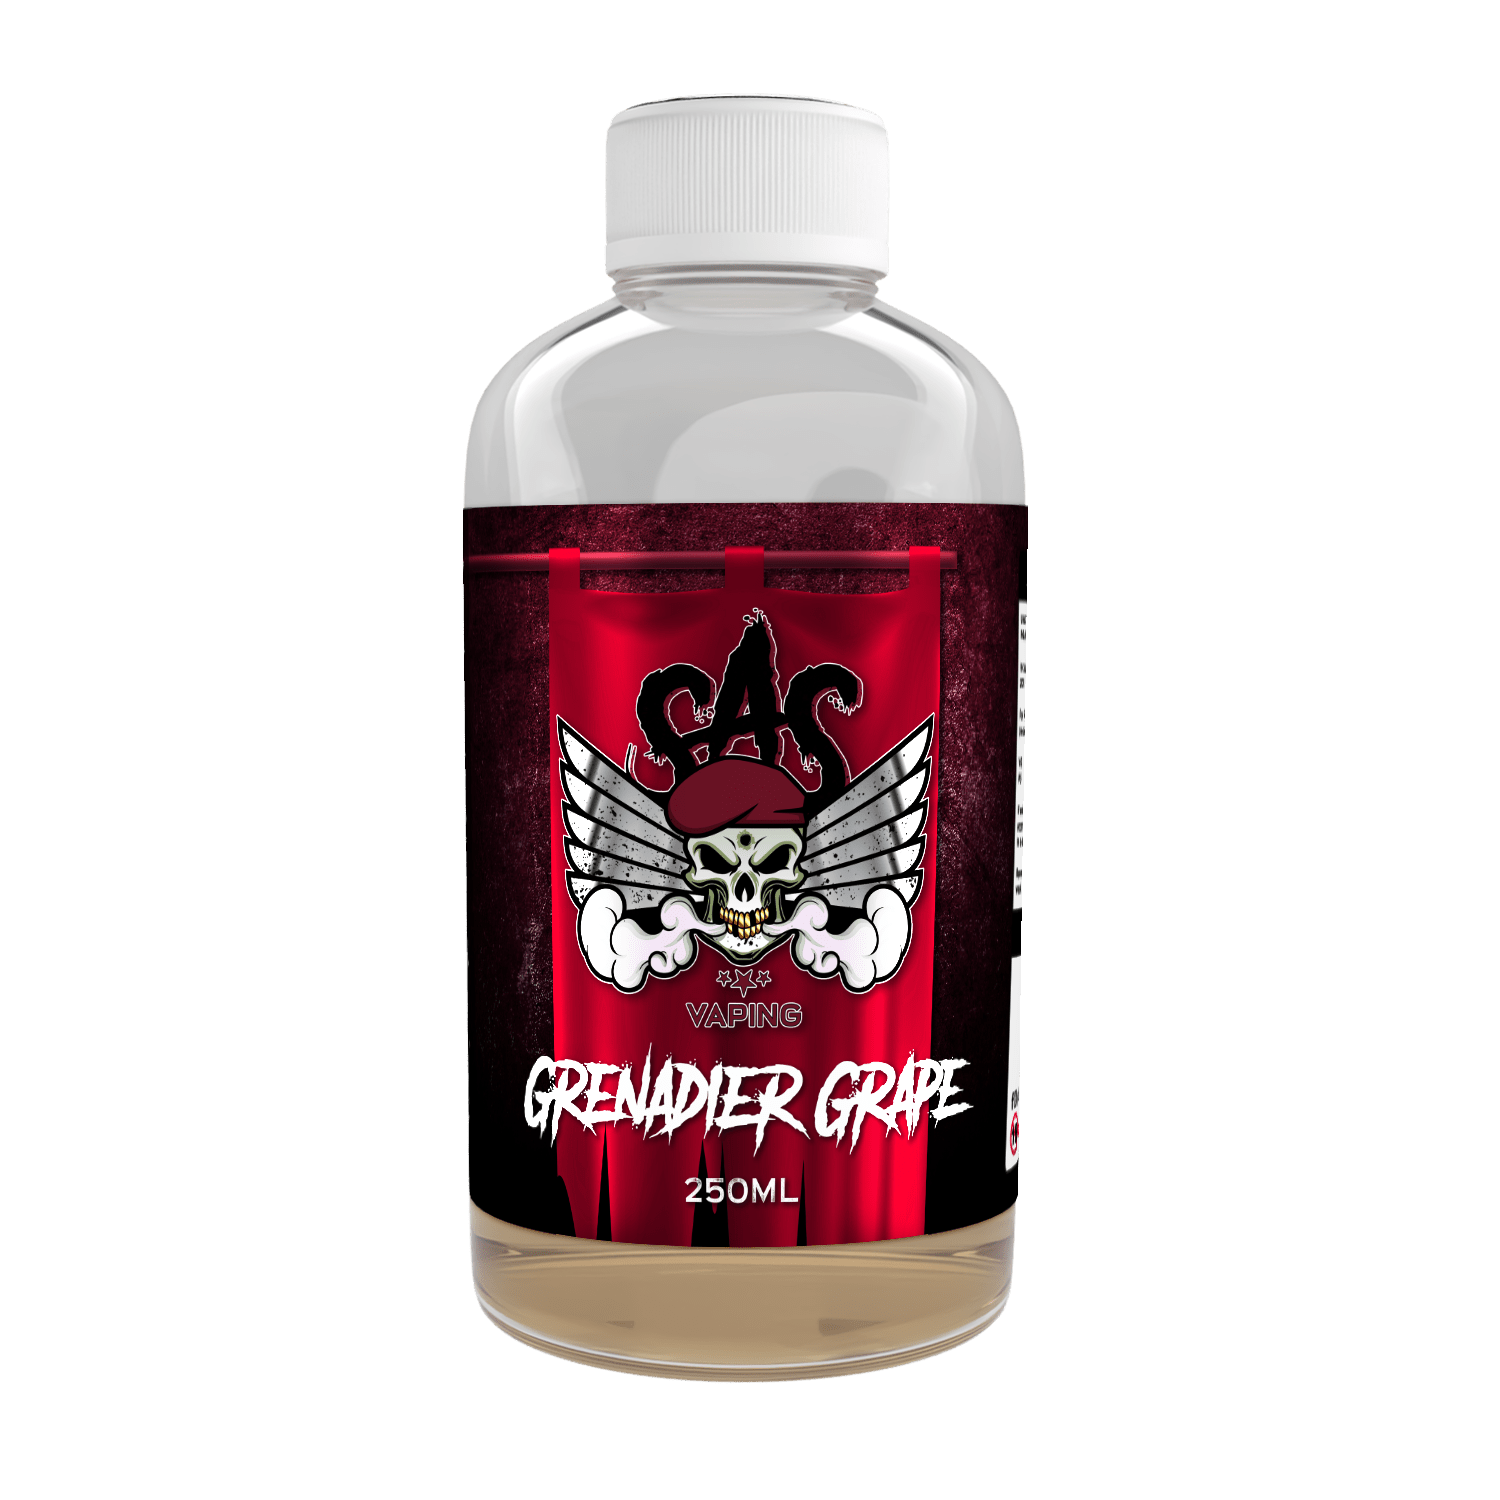 Grenadier Grape Flavour Shot by SAS Vaping - 250ml